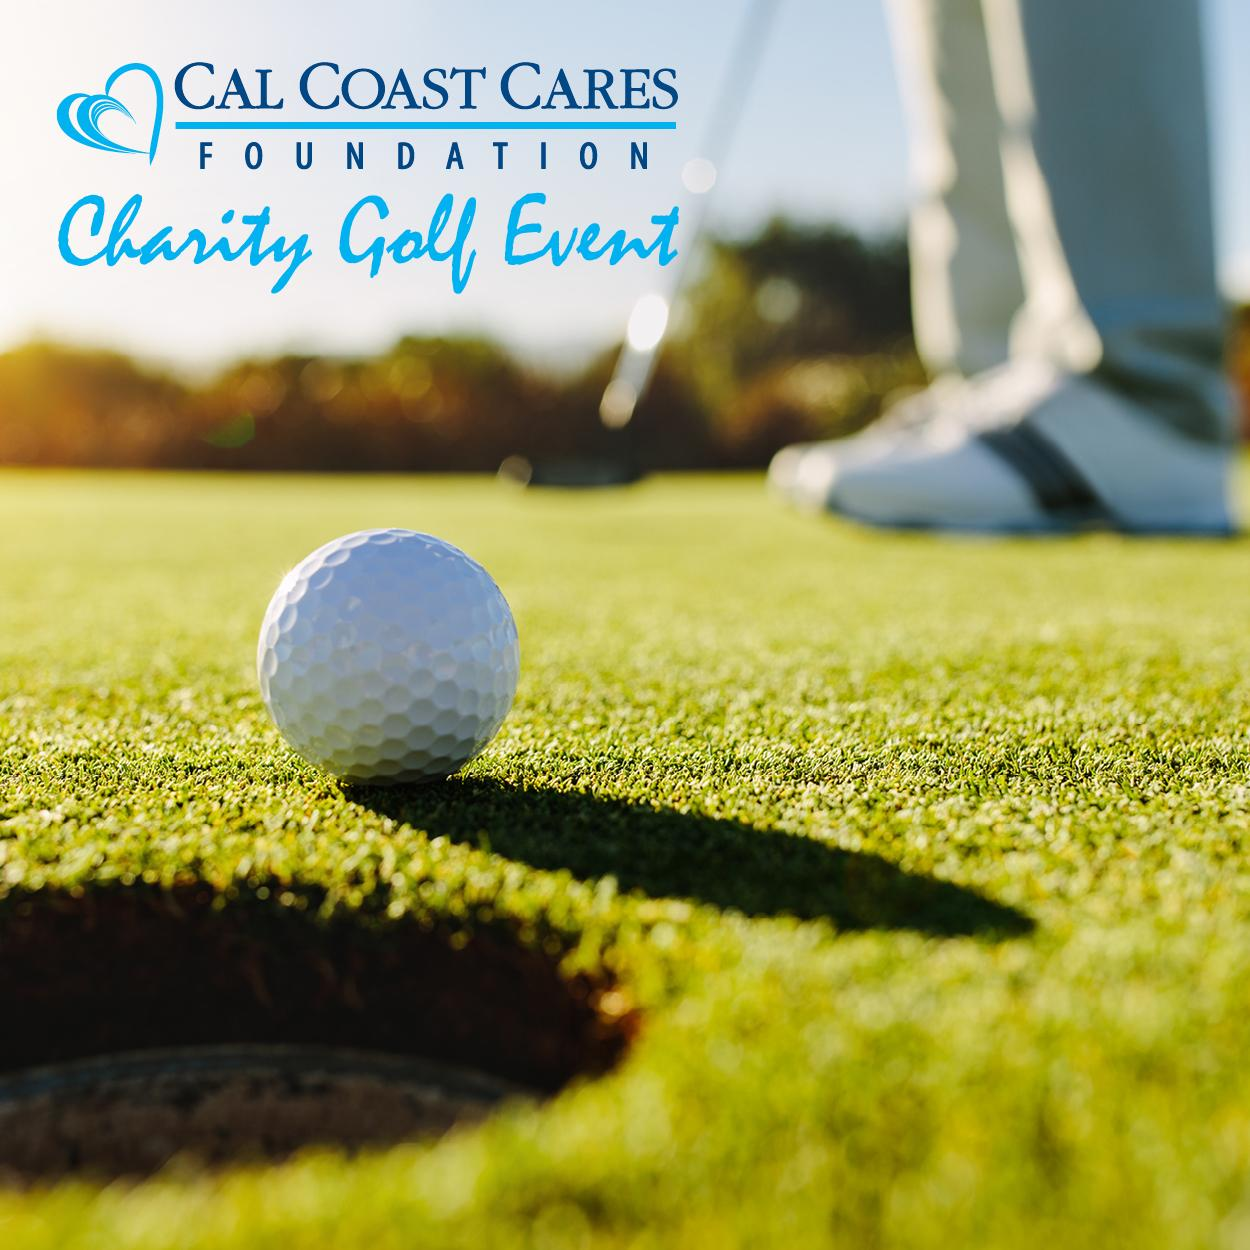 3rd Annual Cal Coast Cares Foundation Charity Golf Event